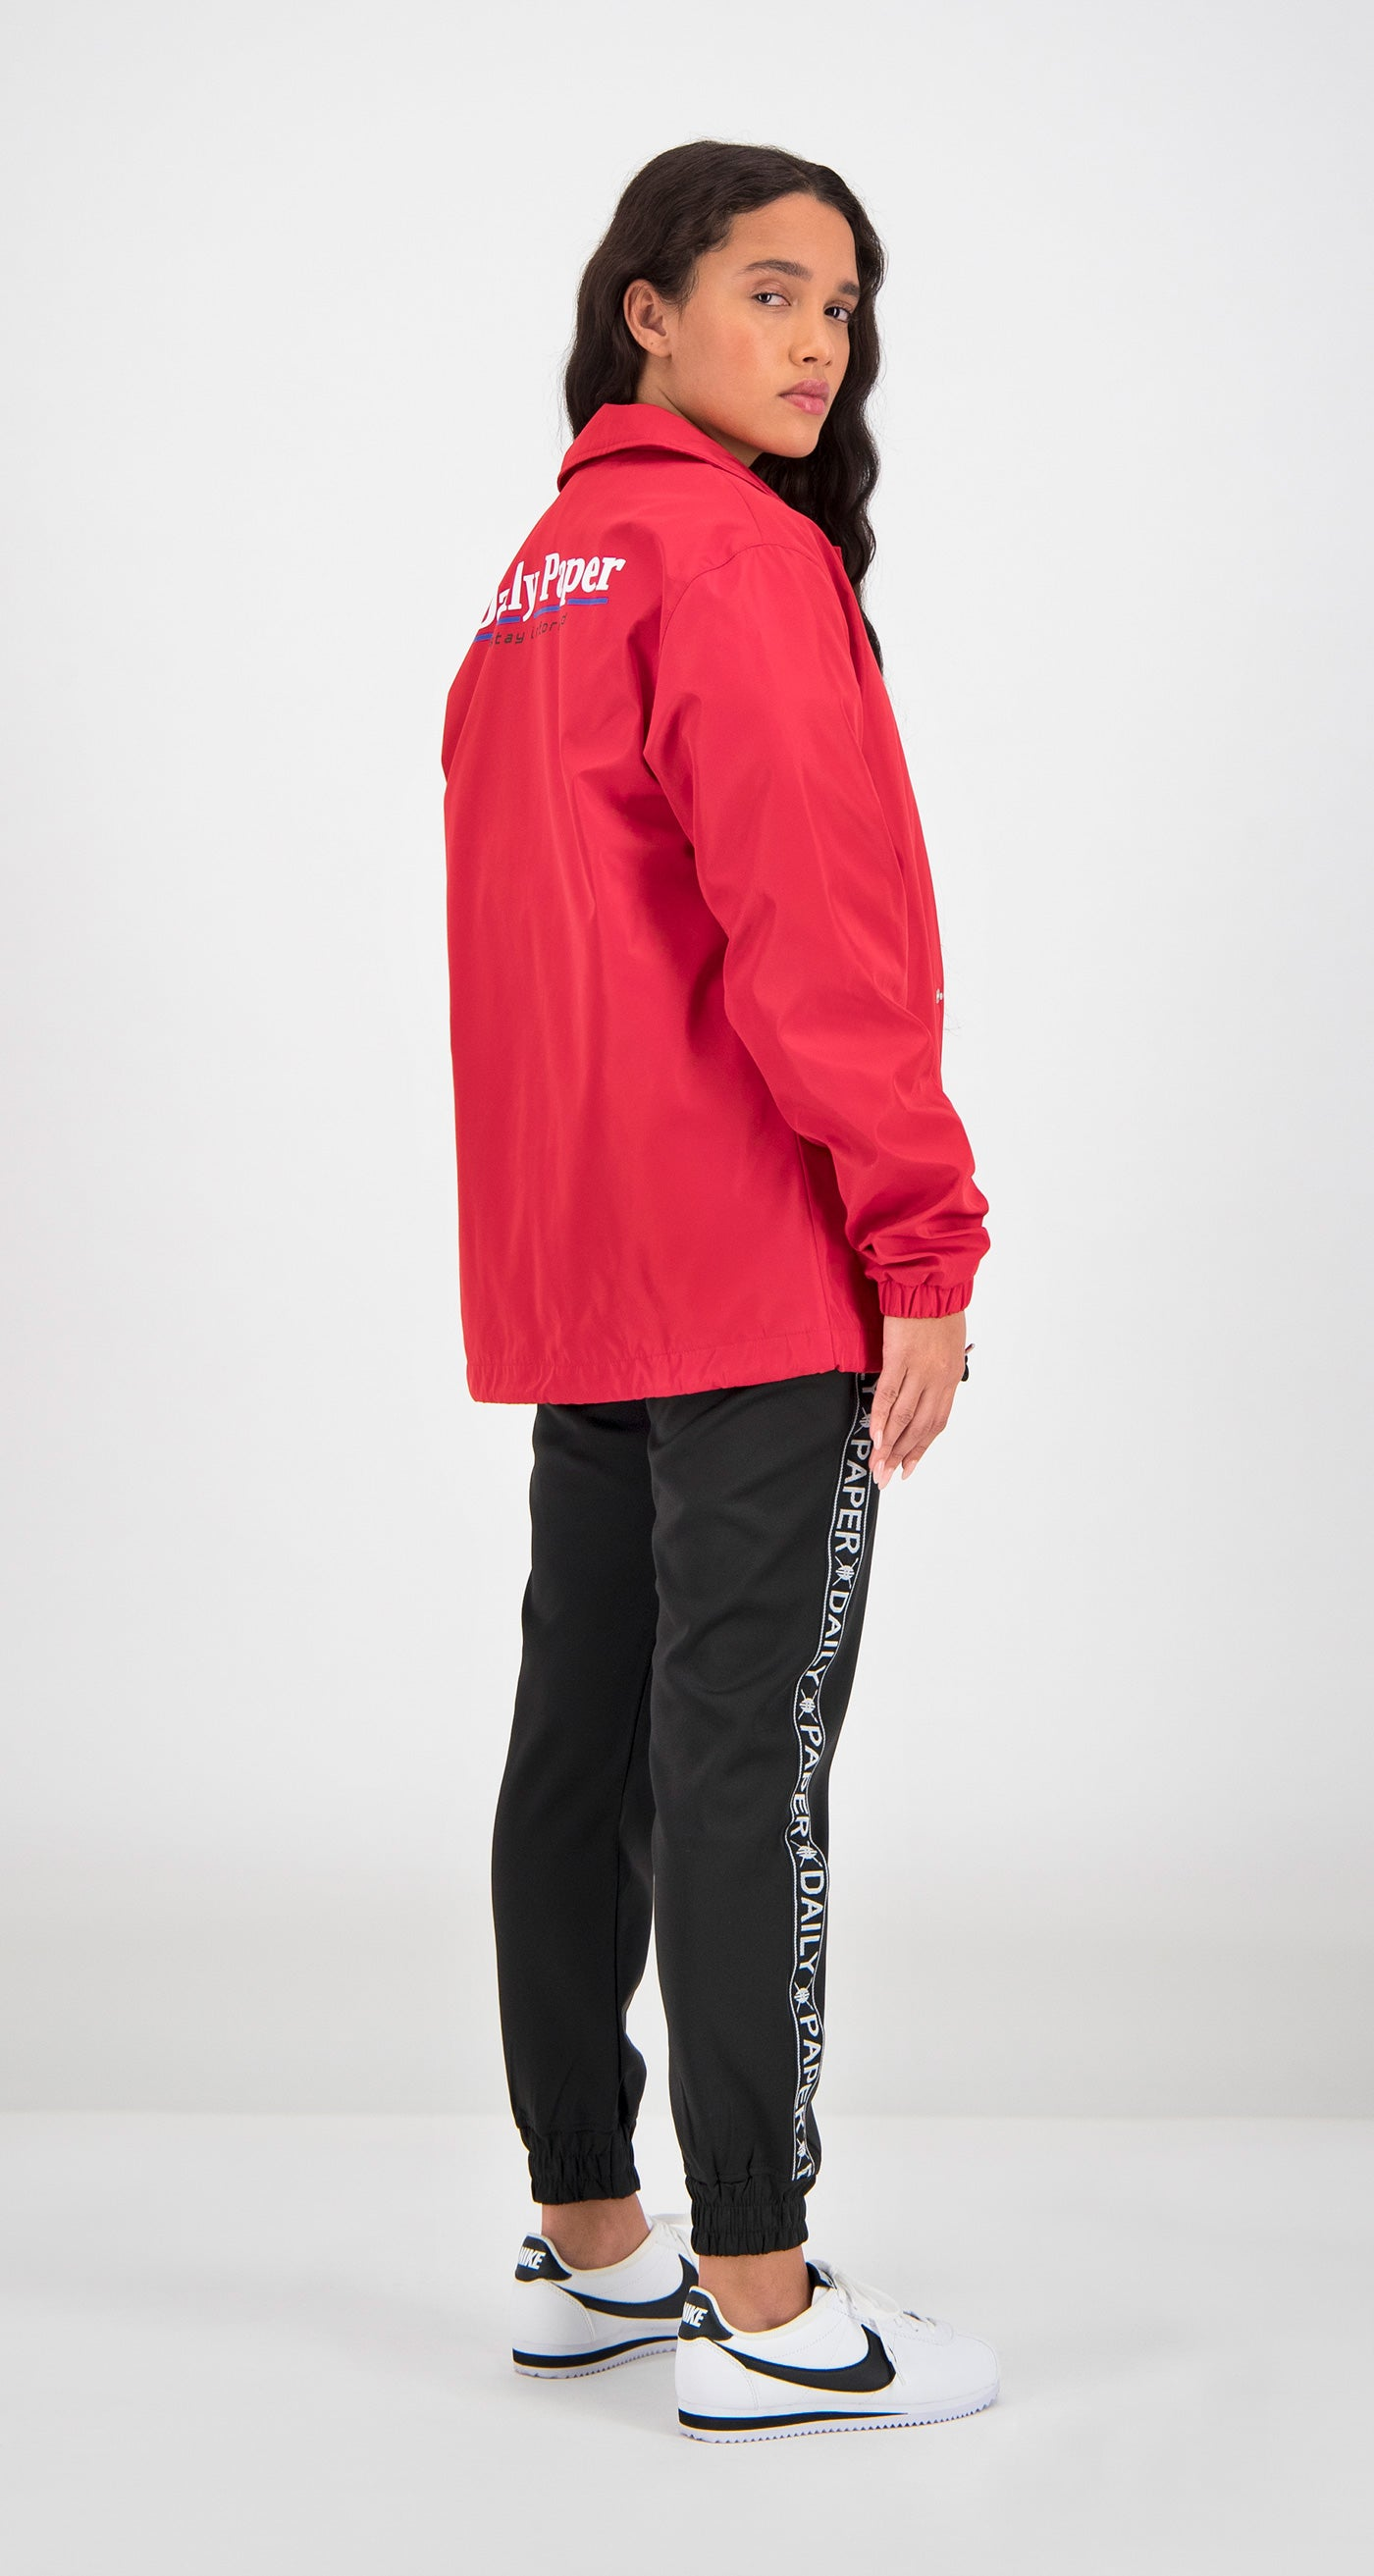 Daily Paper - Red Essential Coach Jacket Women Rear